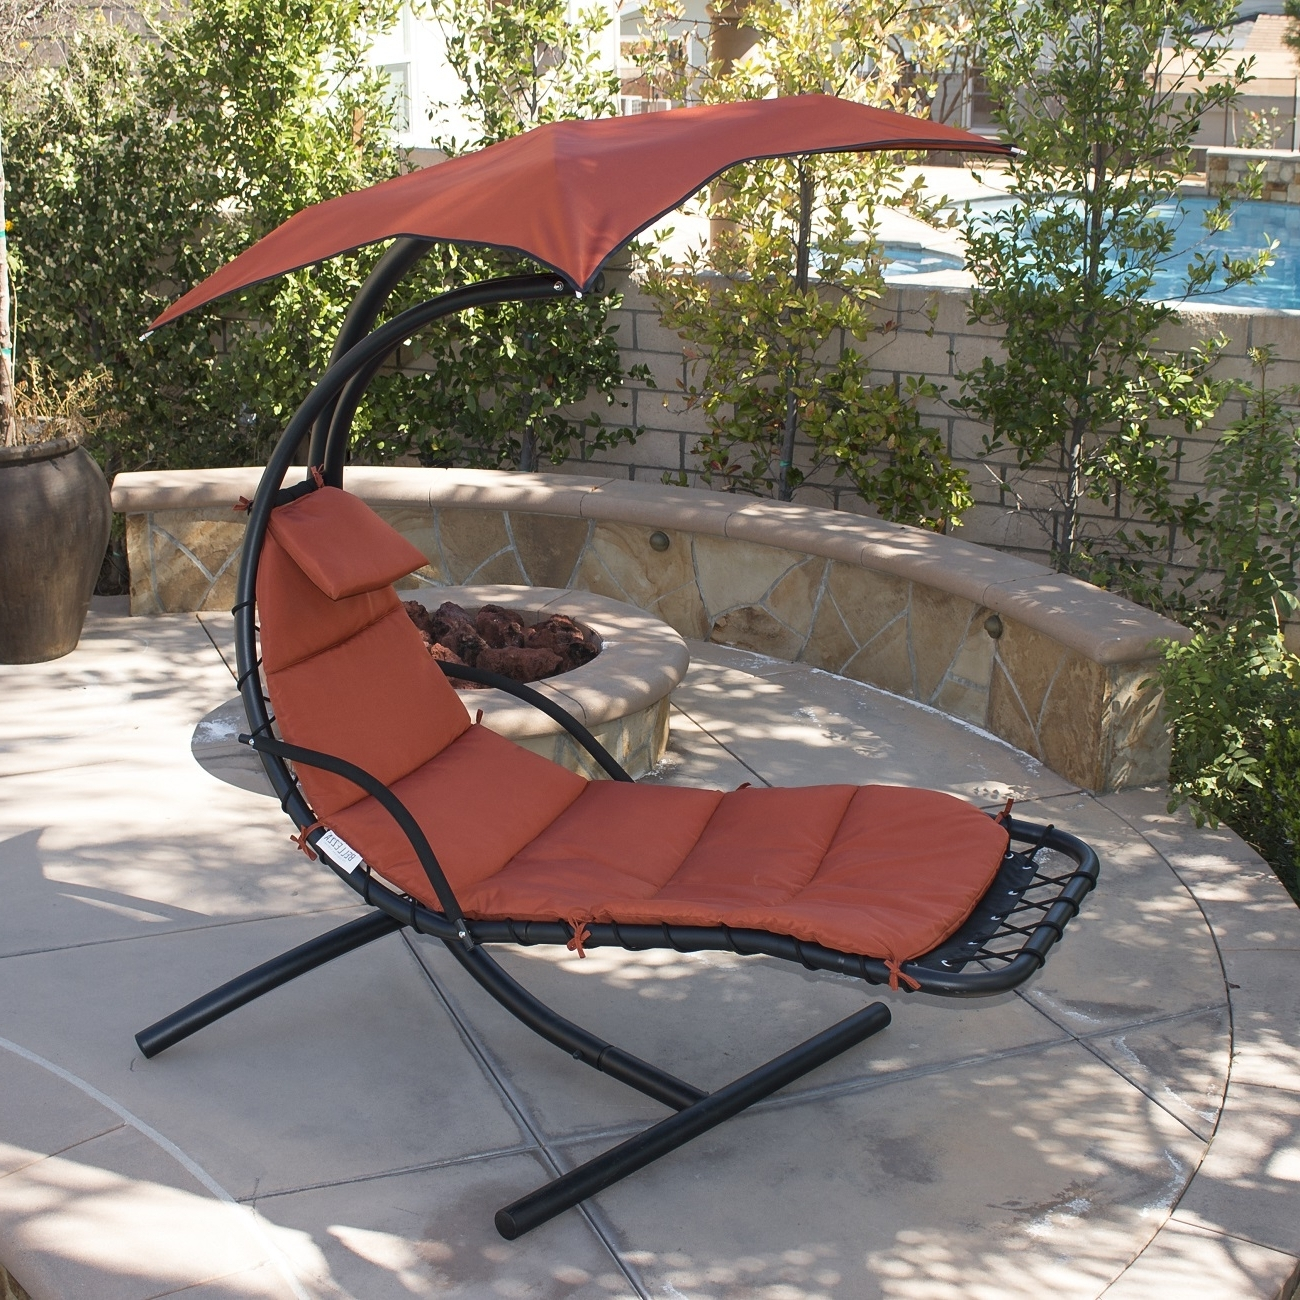 Chaise Lounge Chair With Canopy Intended For Latest Chaise Lounge Chair With Canopy • Lounge Chairs Ideas (View 7 of 15)